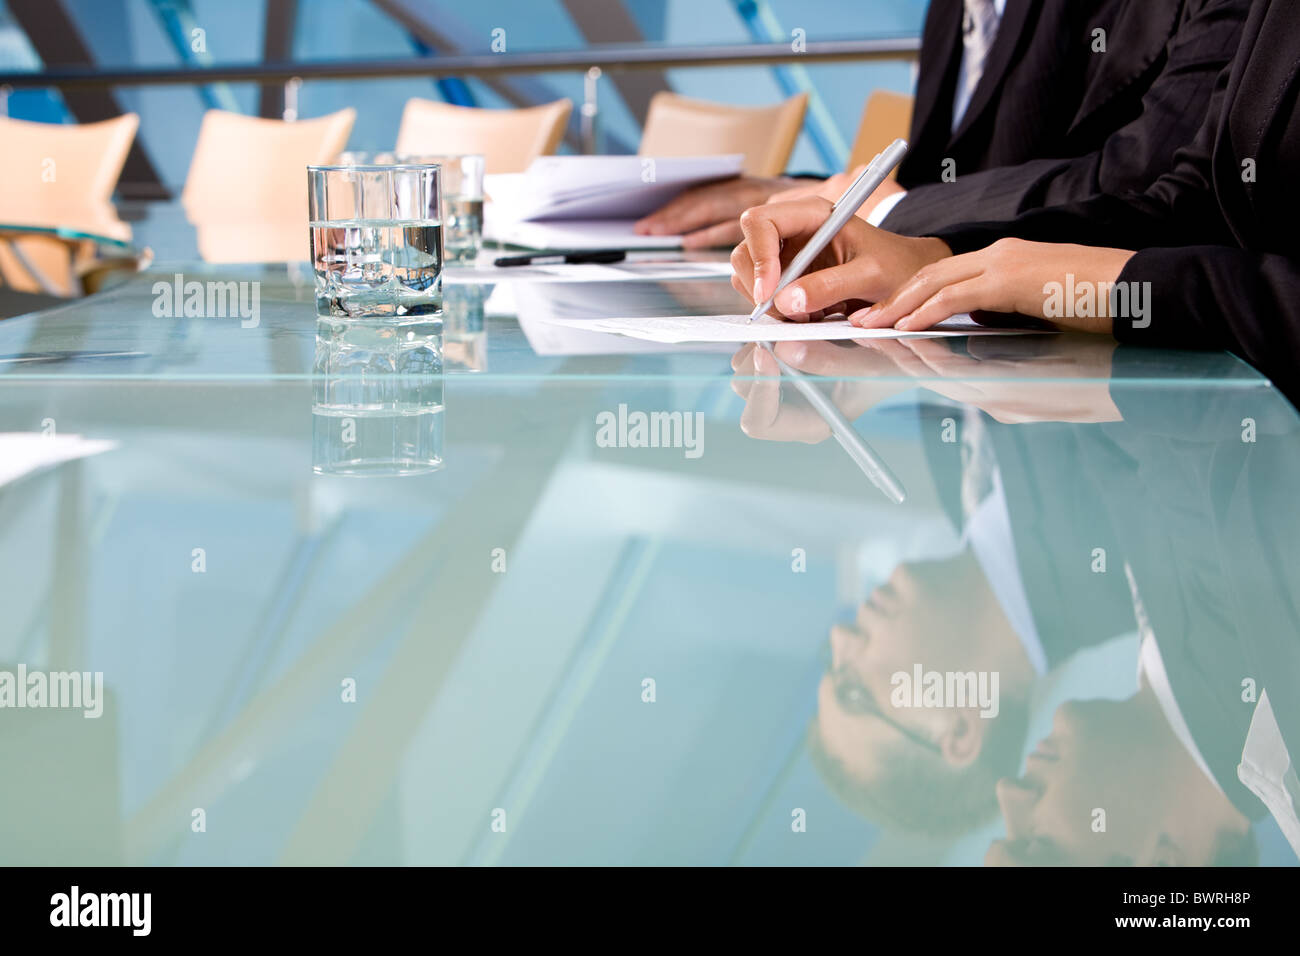 Human hands holding pen and making notes during conference - Stock Image